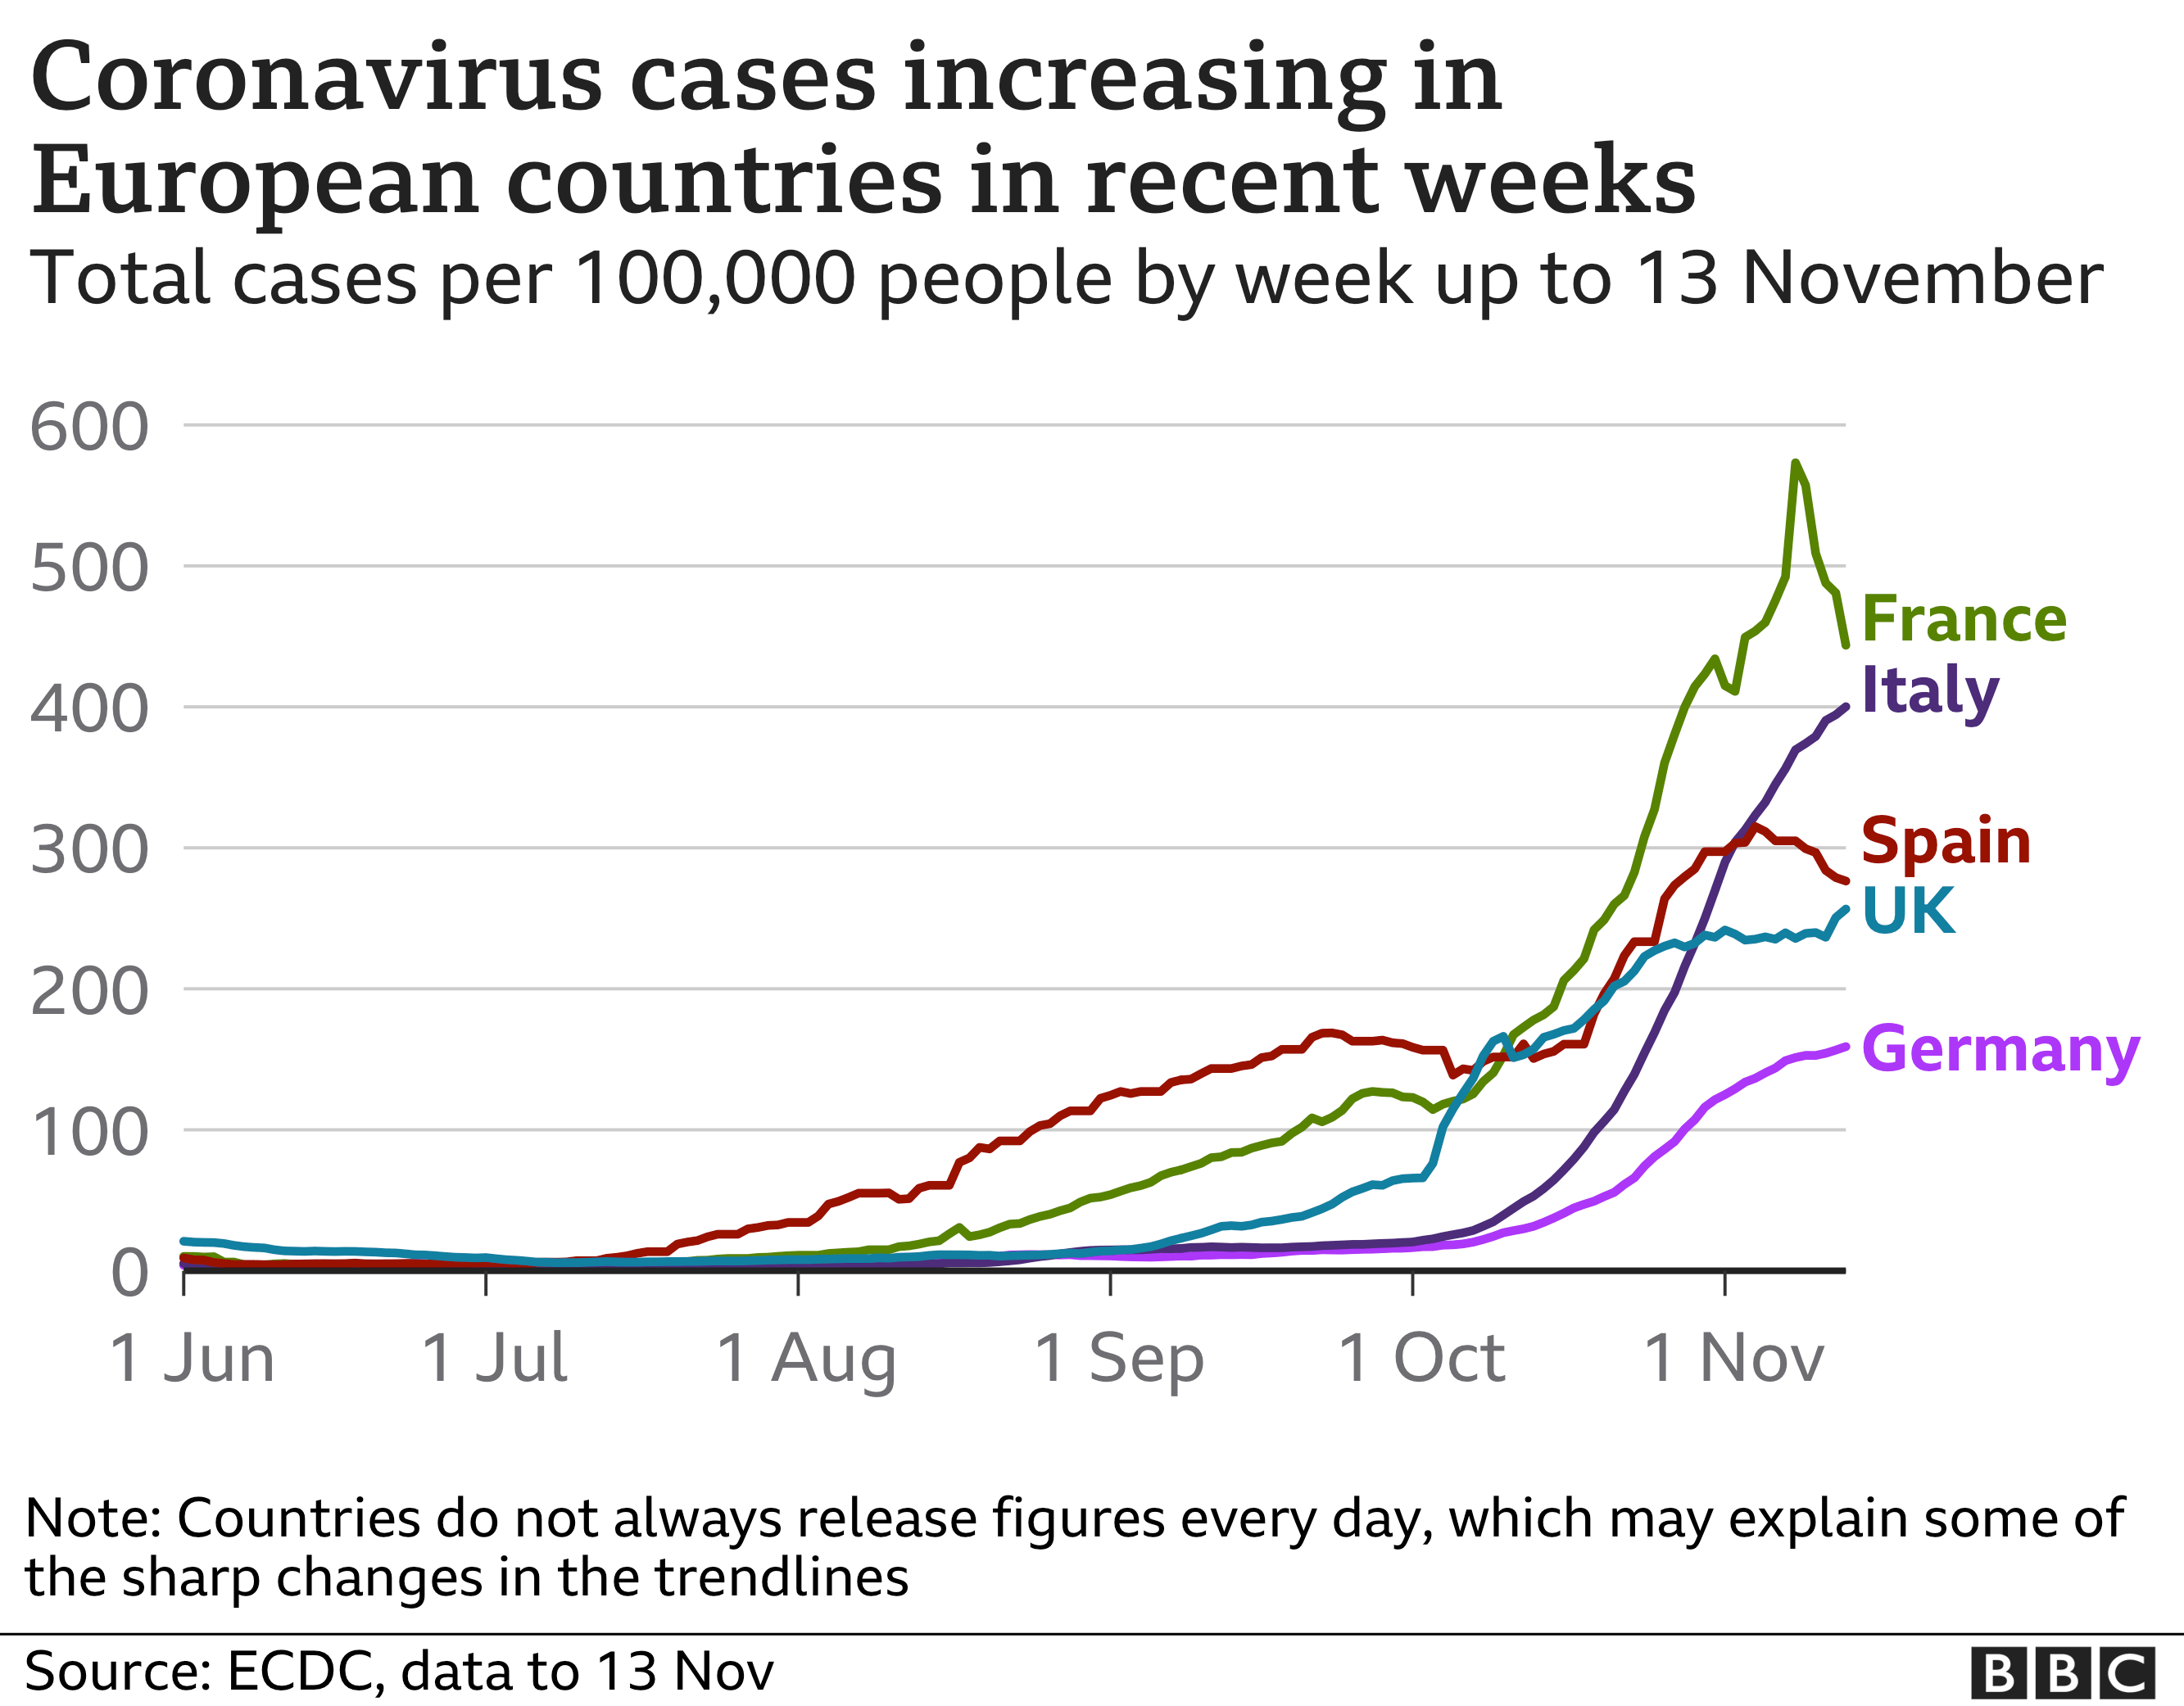 A chart showing the increase in reported coronavirus infections in European countries